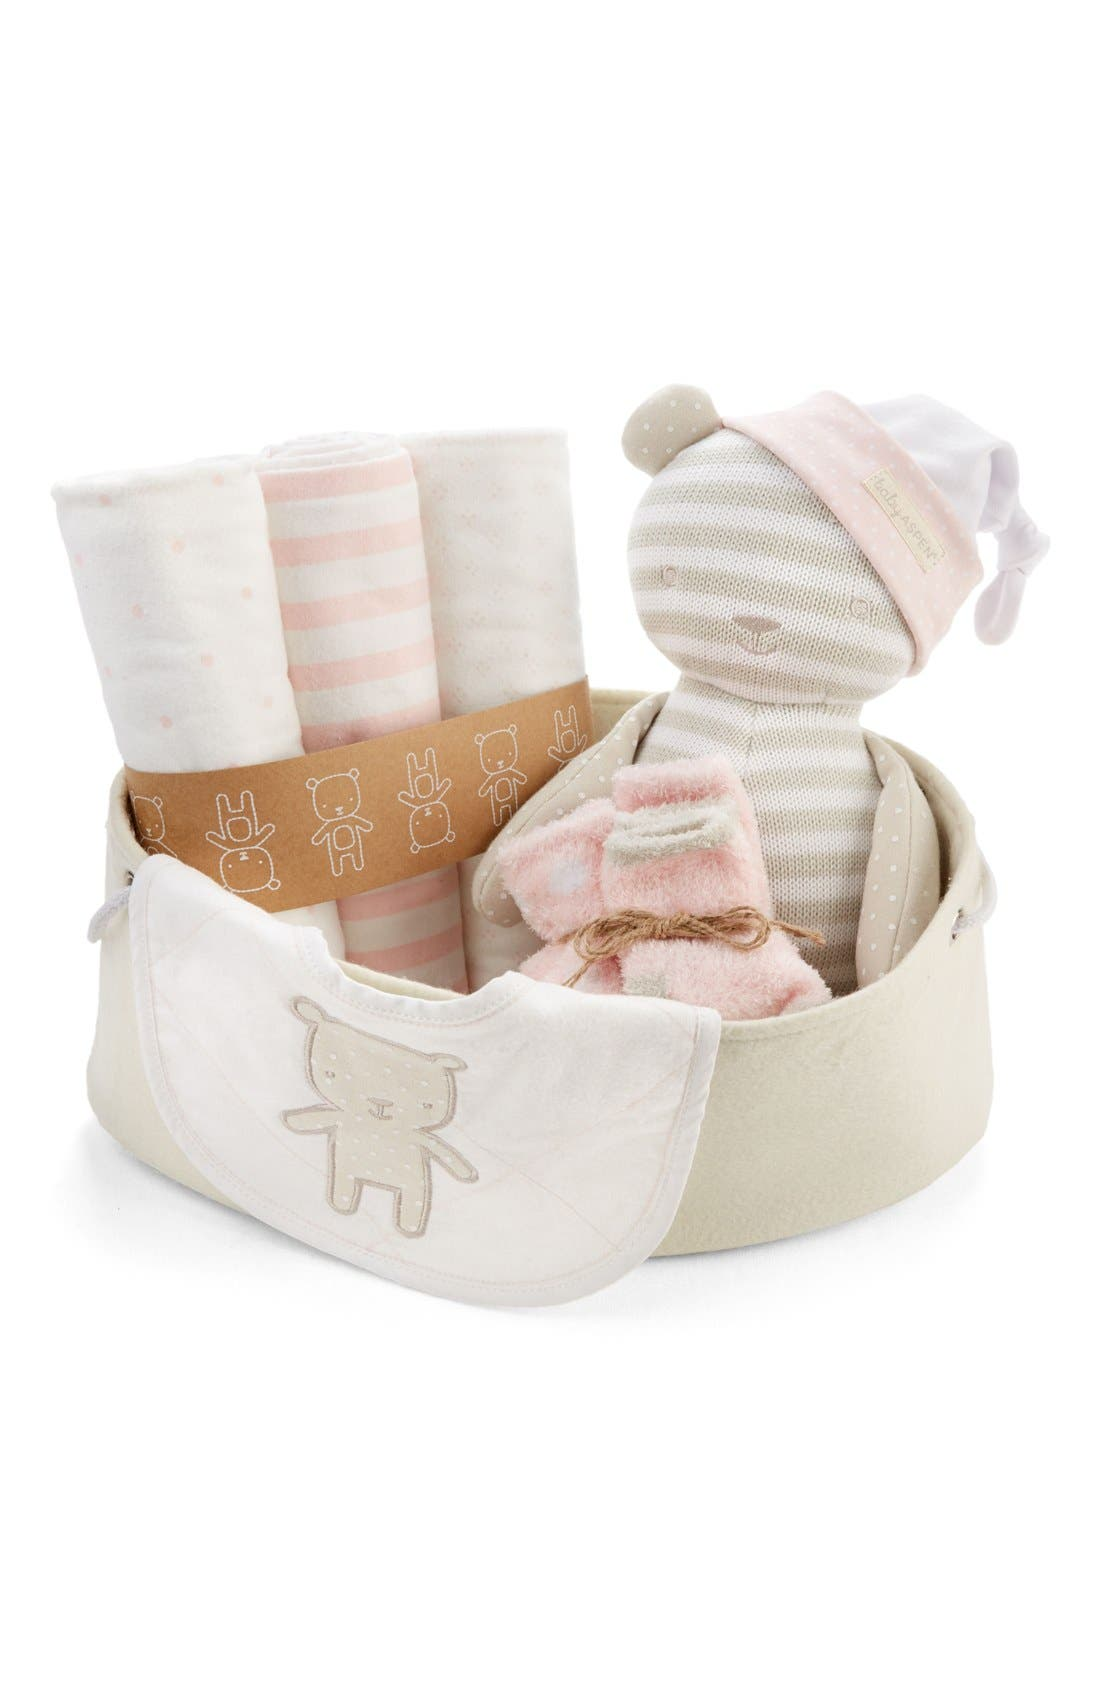 Alternate Image 1 Selected - Baby Aspen Beary Special 10-Piece Gift Set (Baby)